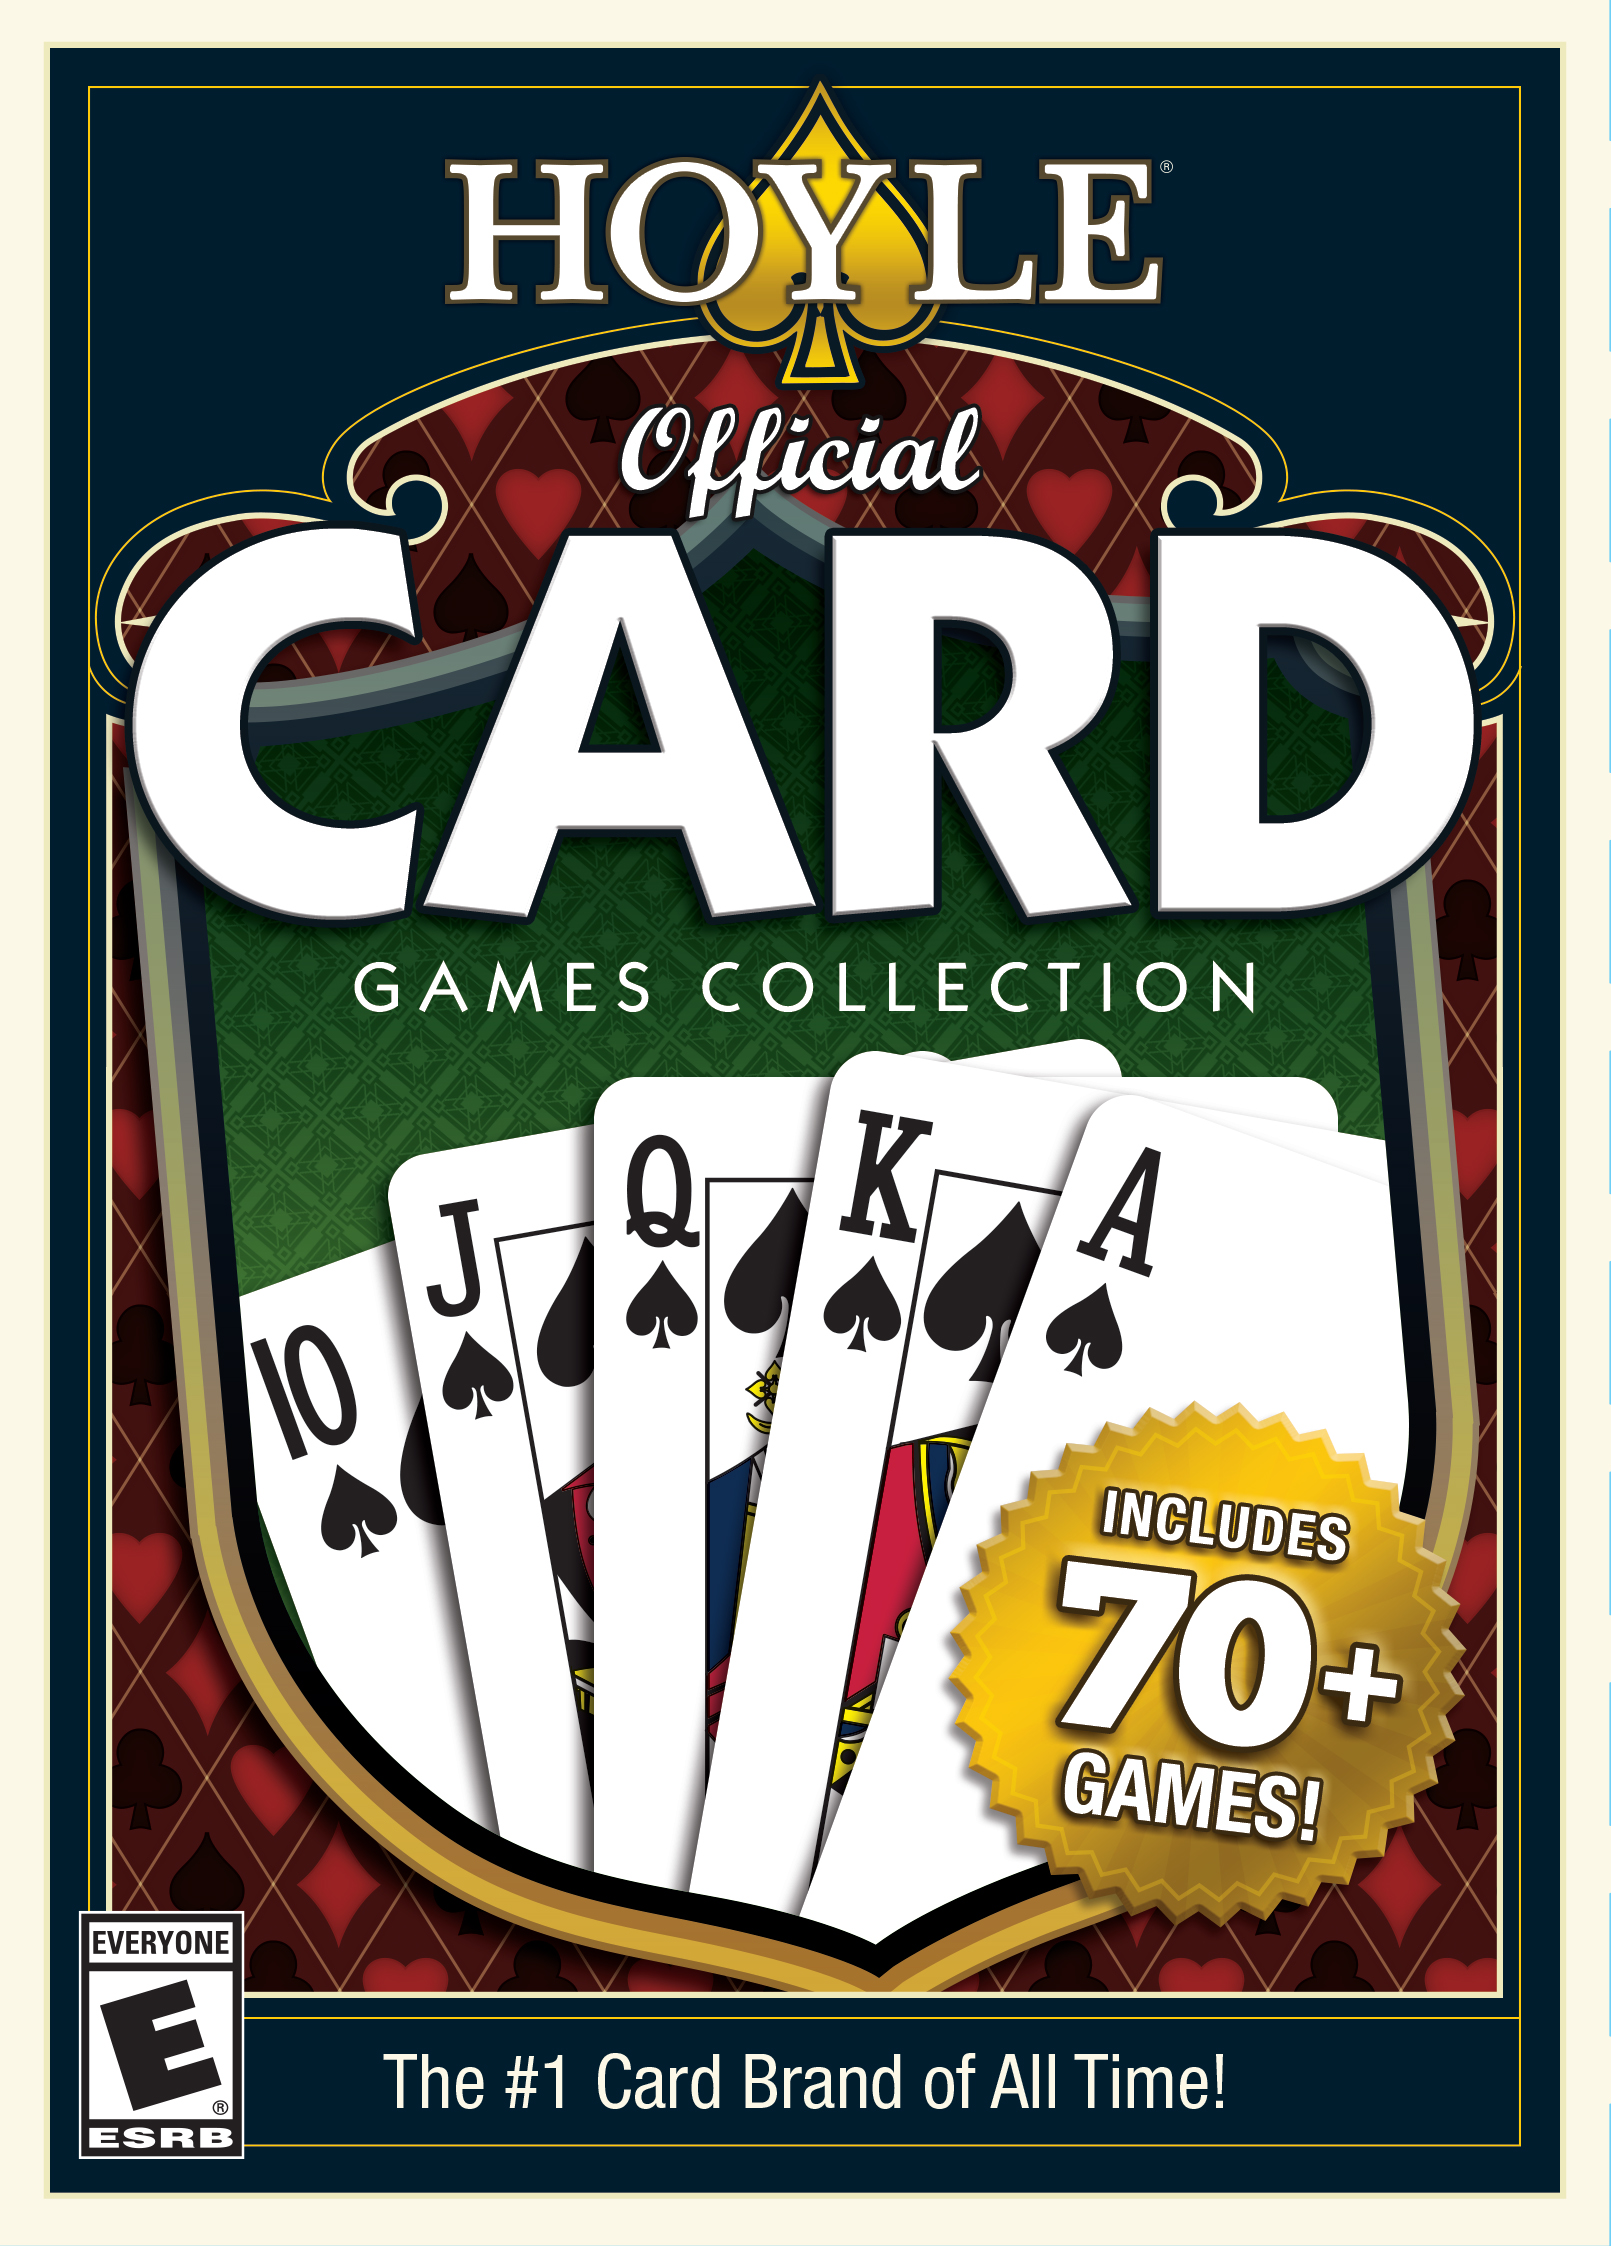 hoyle casino card game rules - 9